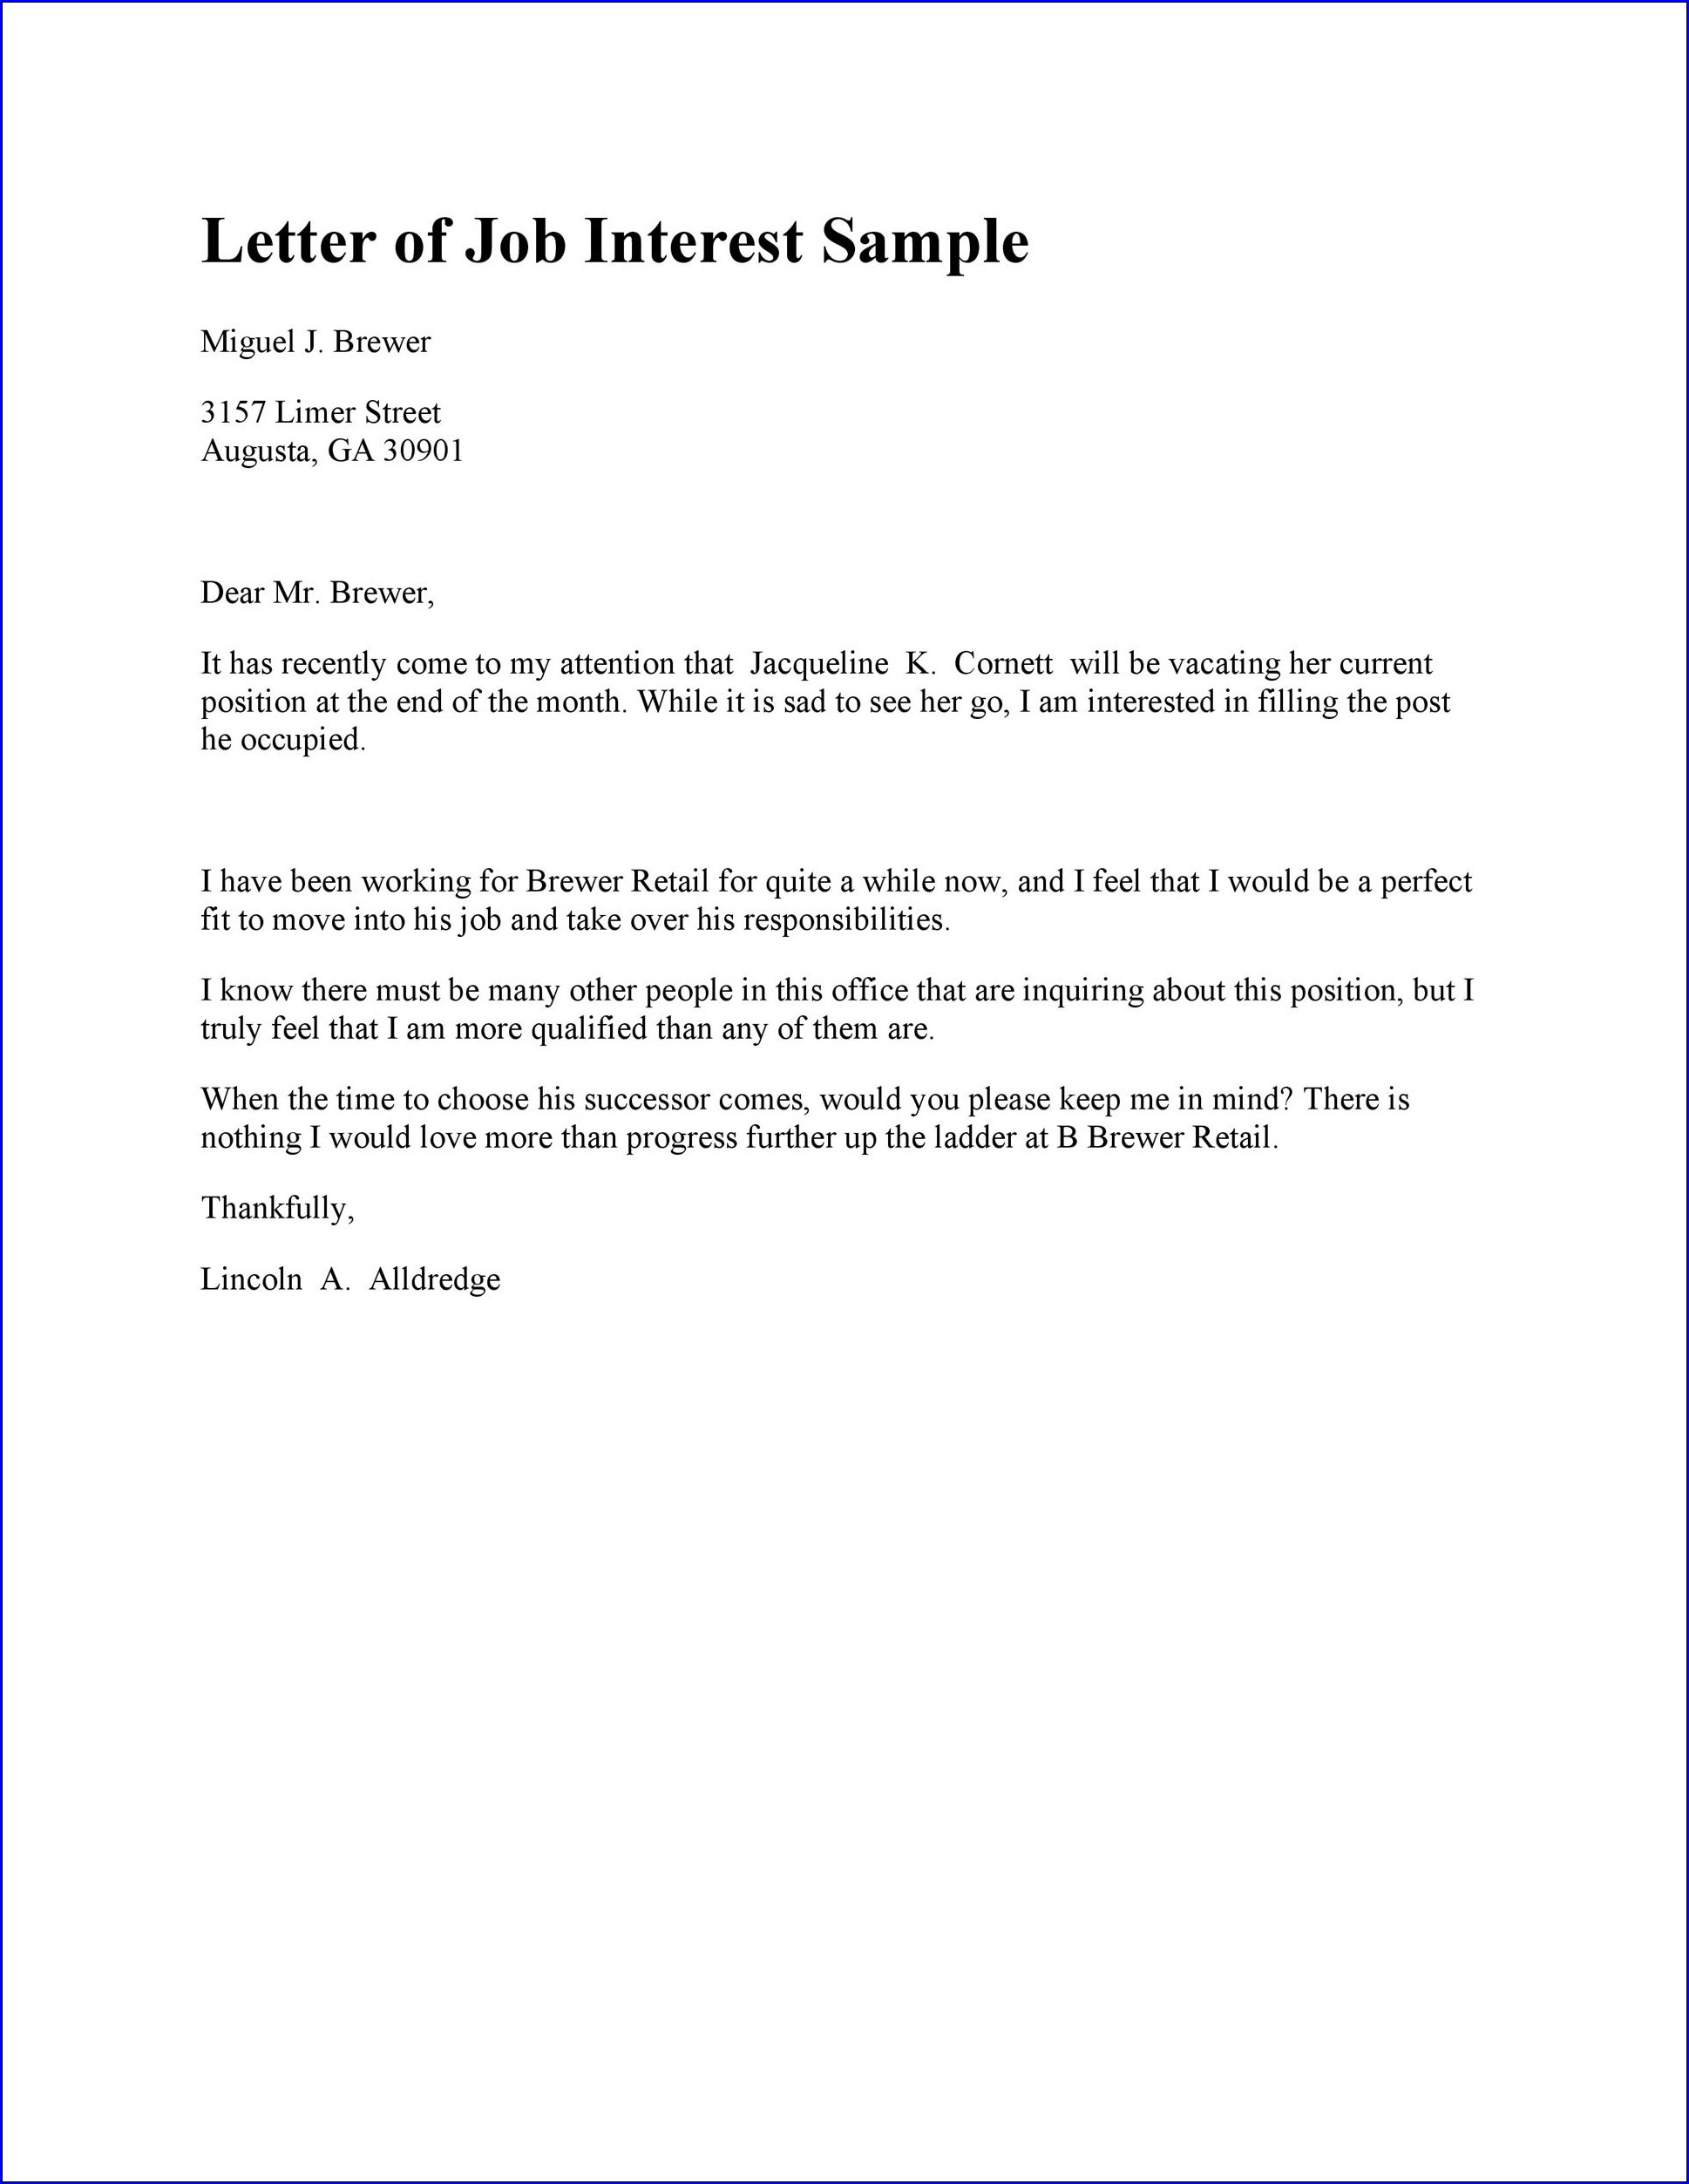 Letter of Interest Template for a Job Example